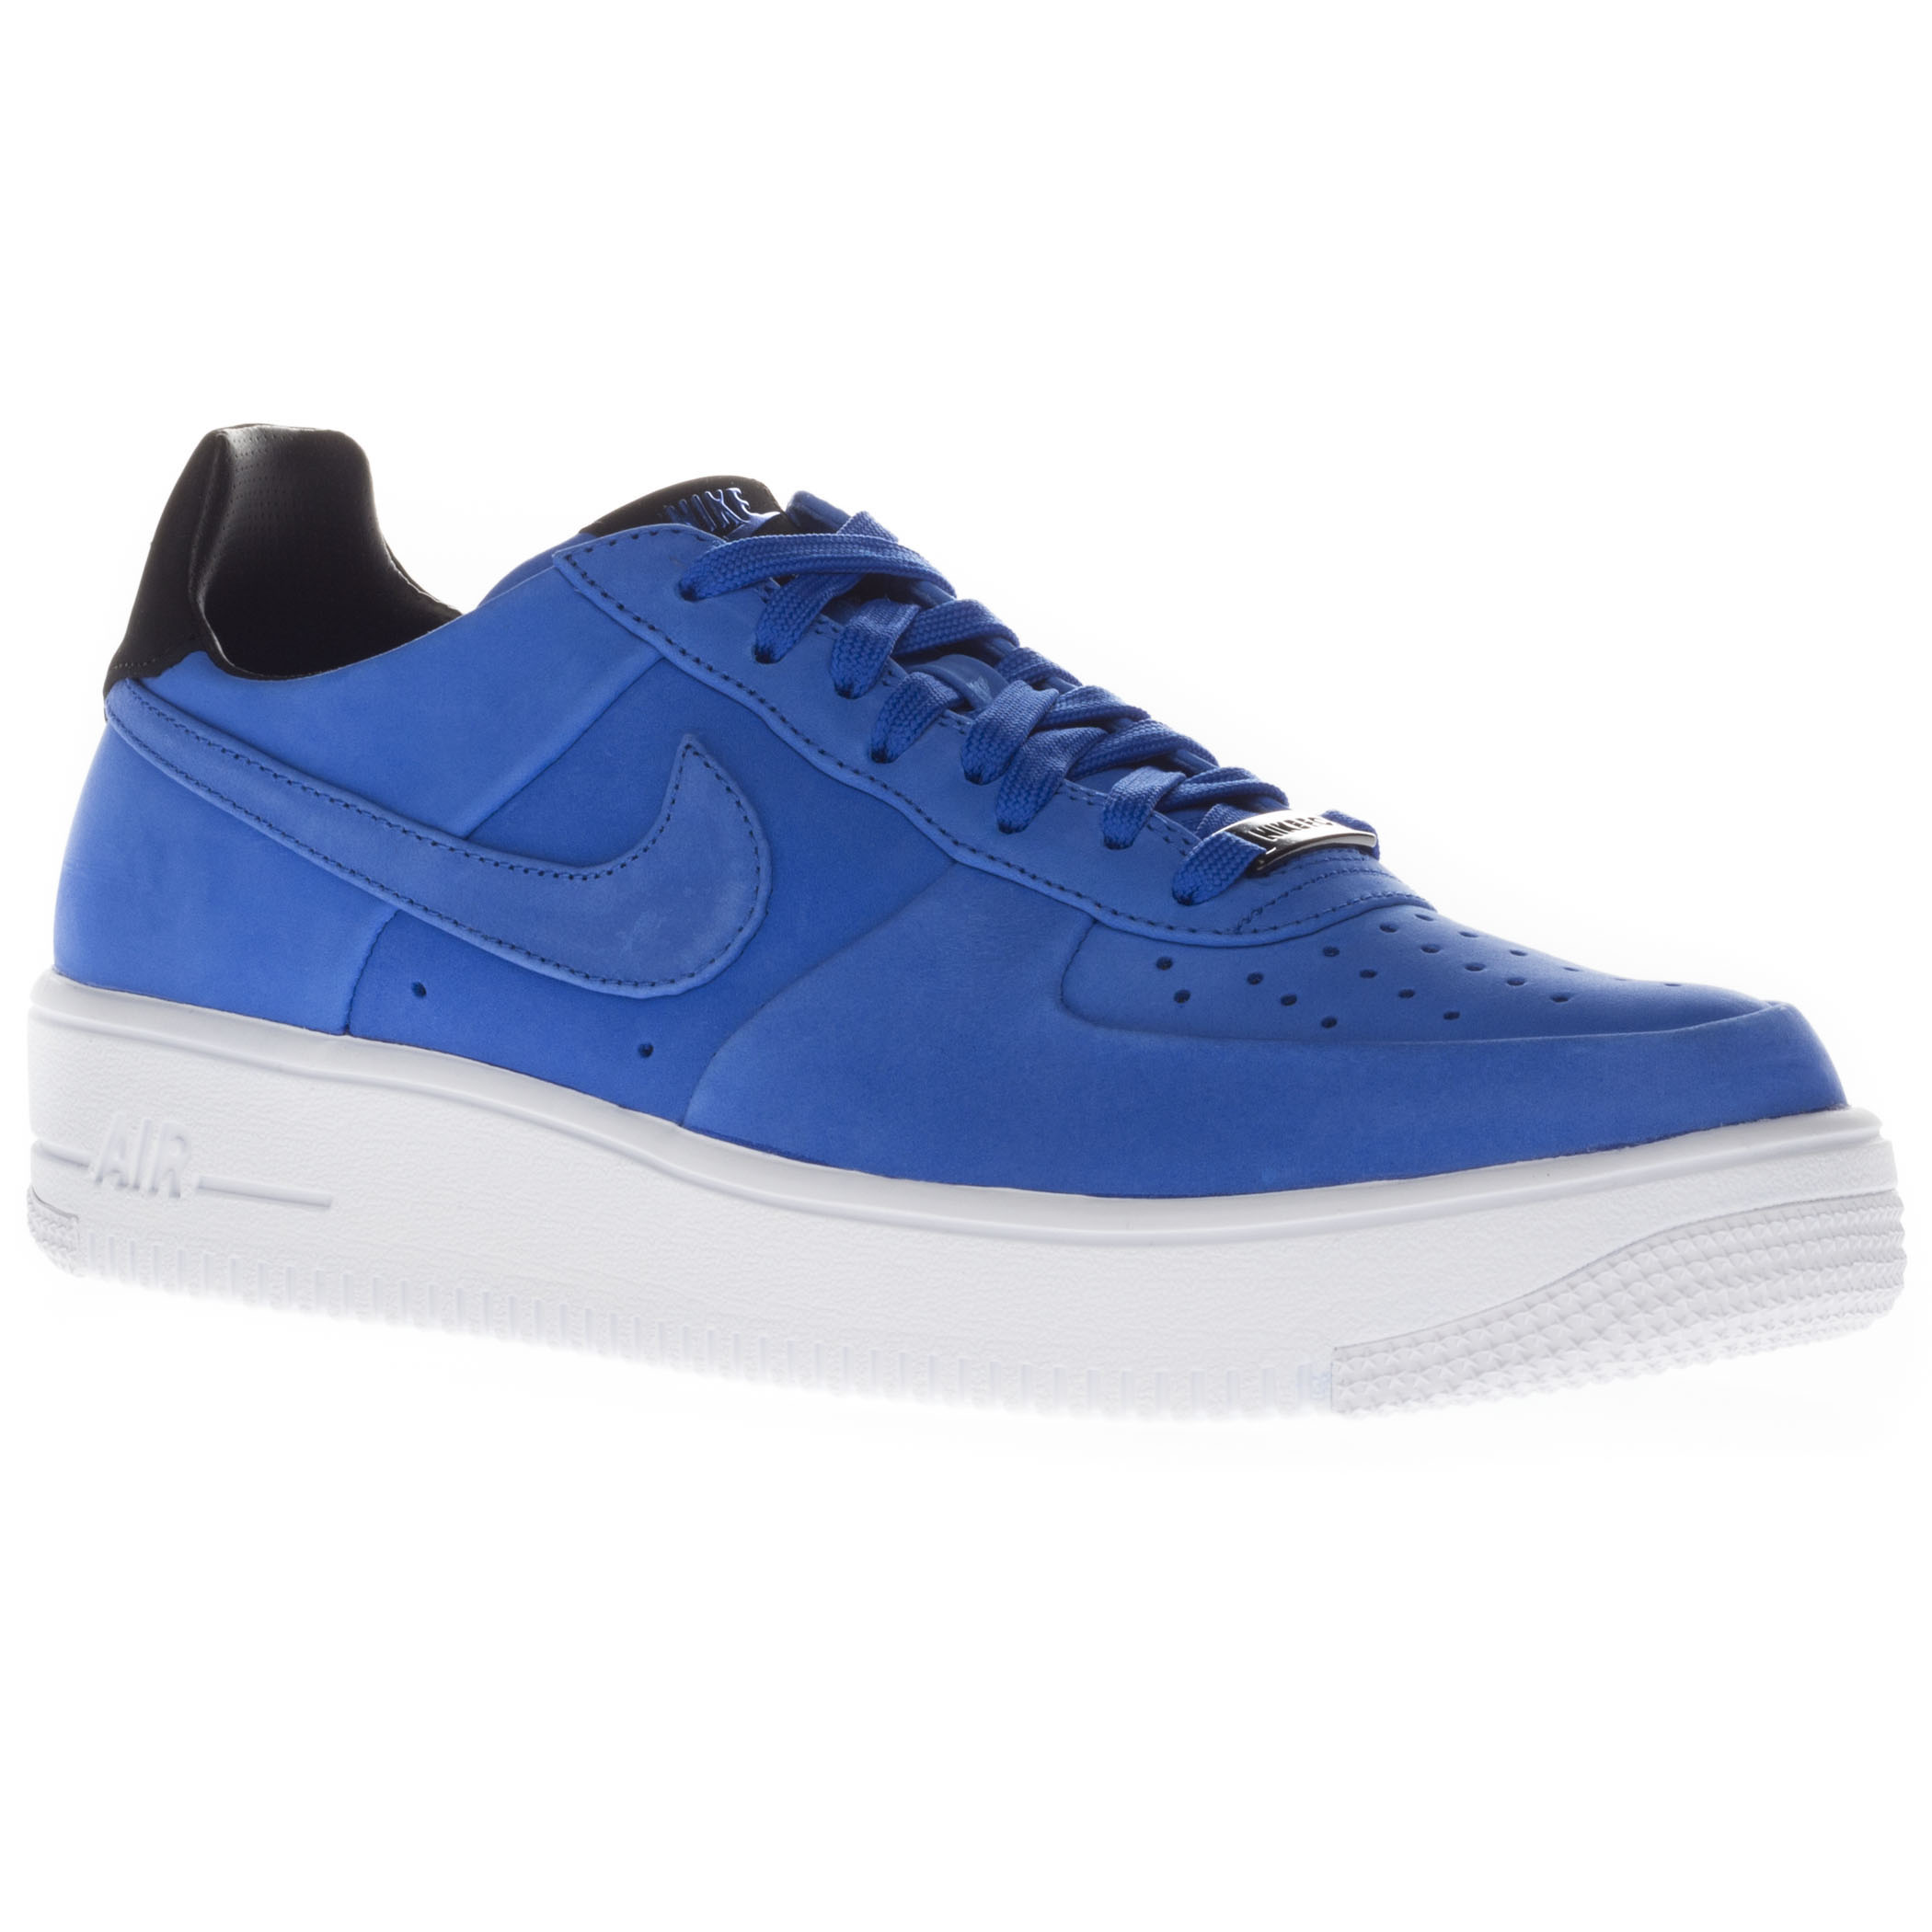 super popular 2fab8 e65b4 Details about Nike Men's Air Force 1 Ultraforce FC Low Top Trainers CR7 Gym  Sport Active